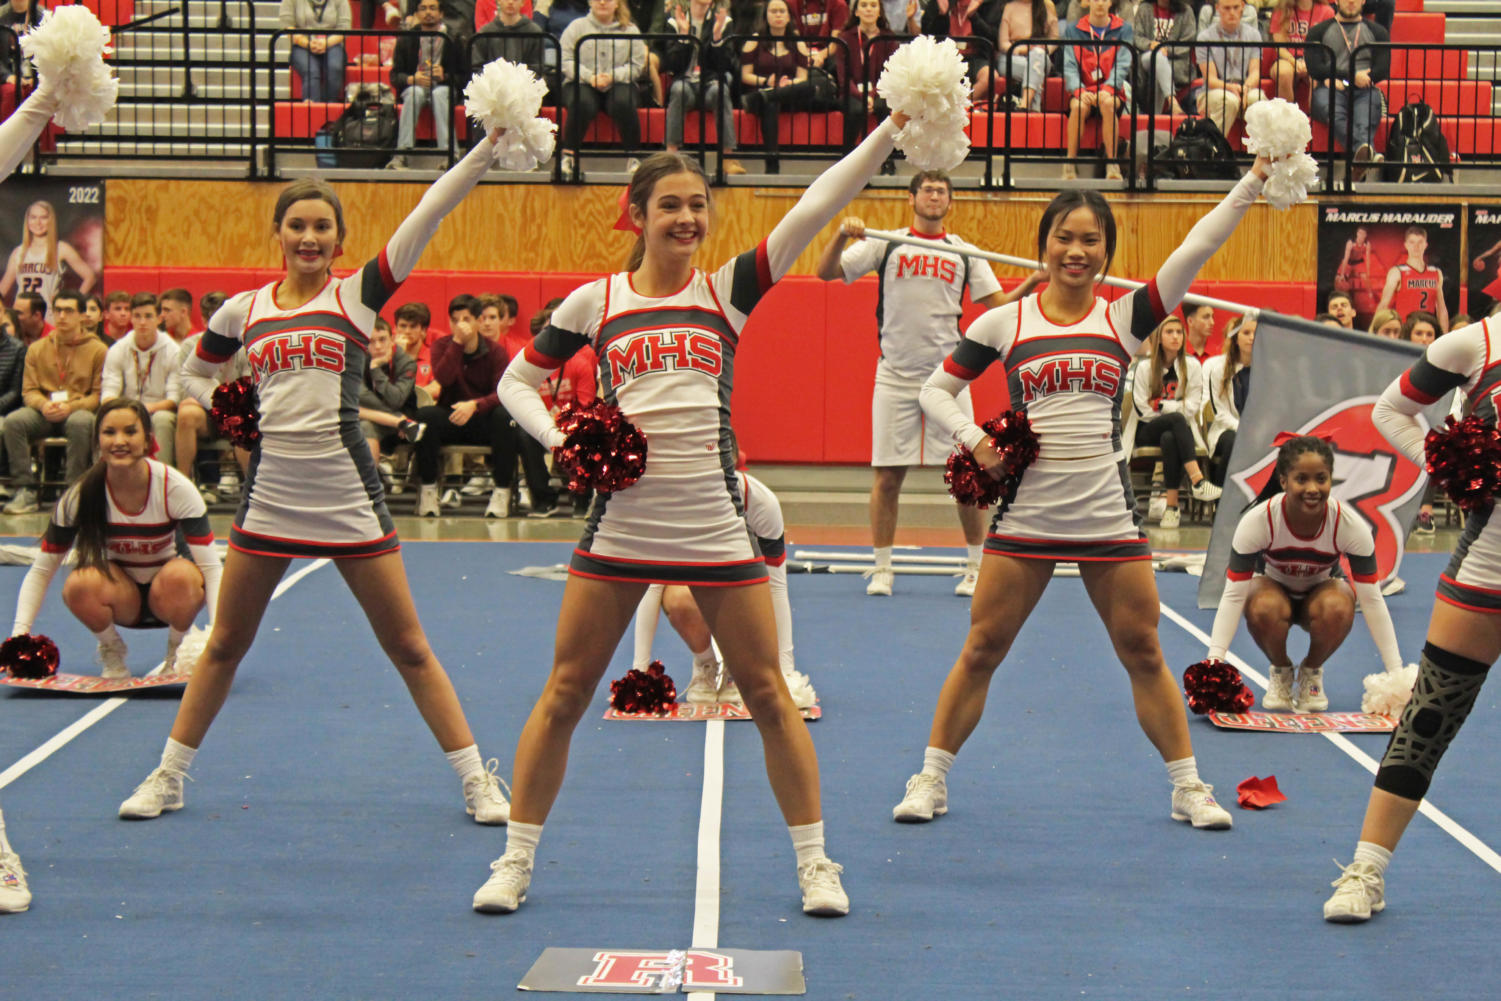 Sophomore Erin Bookout, junior Celine Toias and senior Ivana Tieu perform the second place routine at a pep rally. The cheerleaders don't perform full routines at events like football games, so the pep rally was an opportunity for the team to show off their hard work to other students.